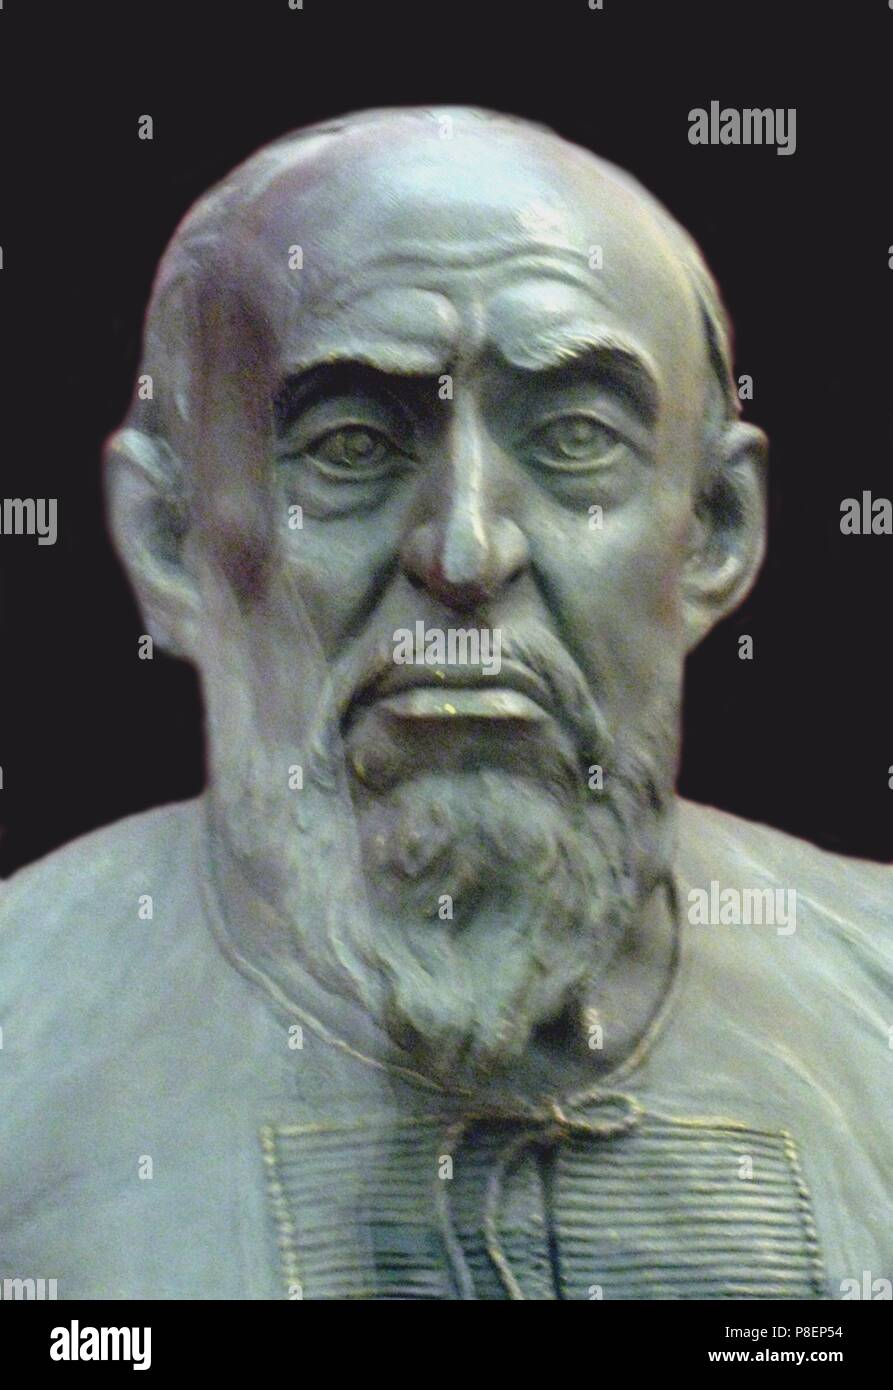 Tsar Ivan IV of Russia (Forensic facial reconstruction). Museum: State United Museum Centre in the Kremlin, Moscow. - Stock Image